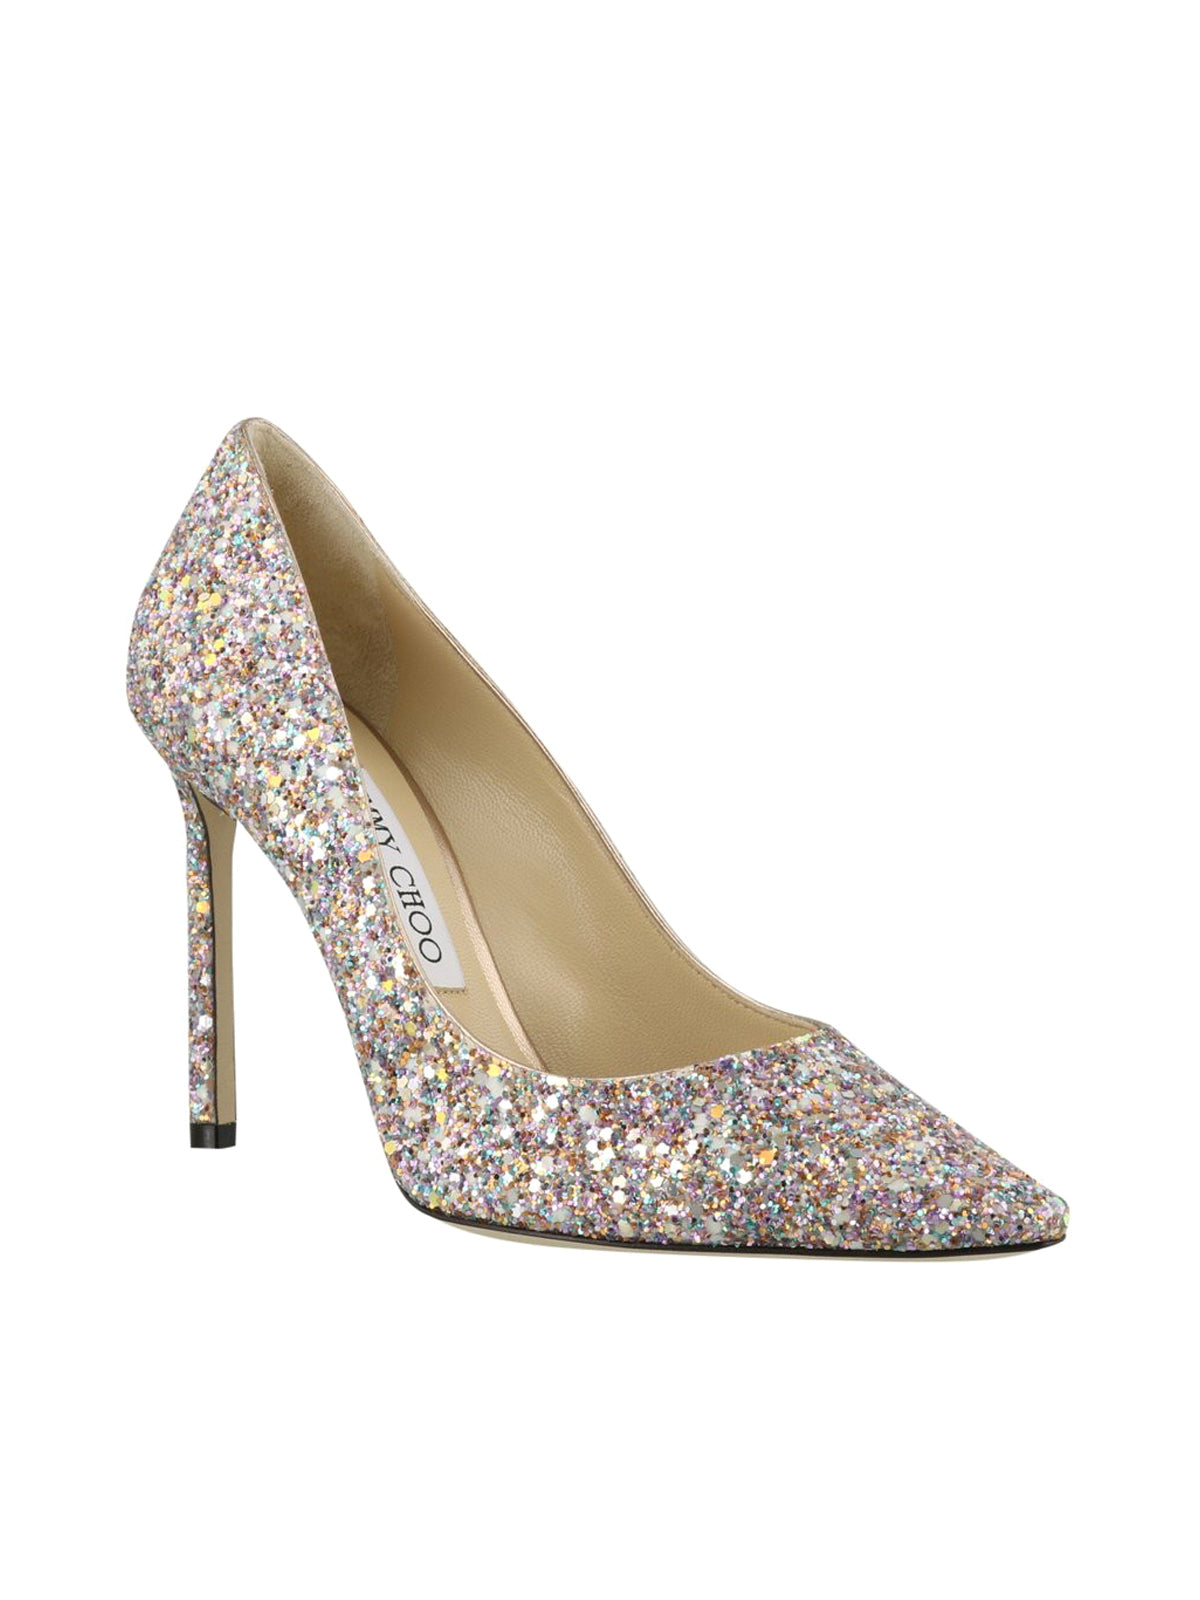 Romy 100 Glitter Pointy Toe Pumps